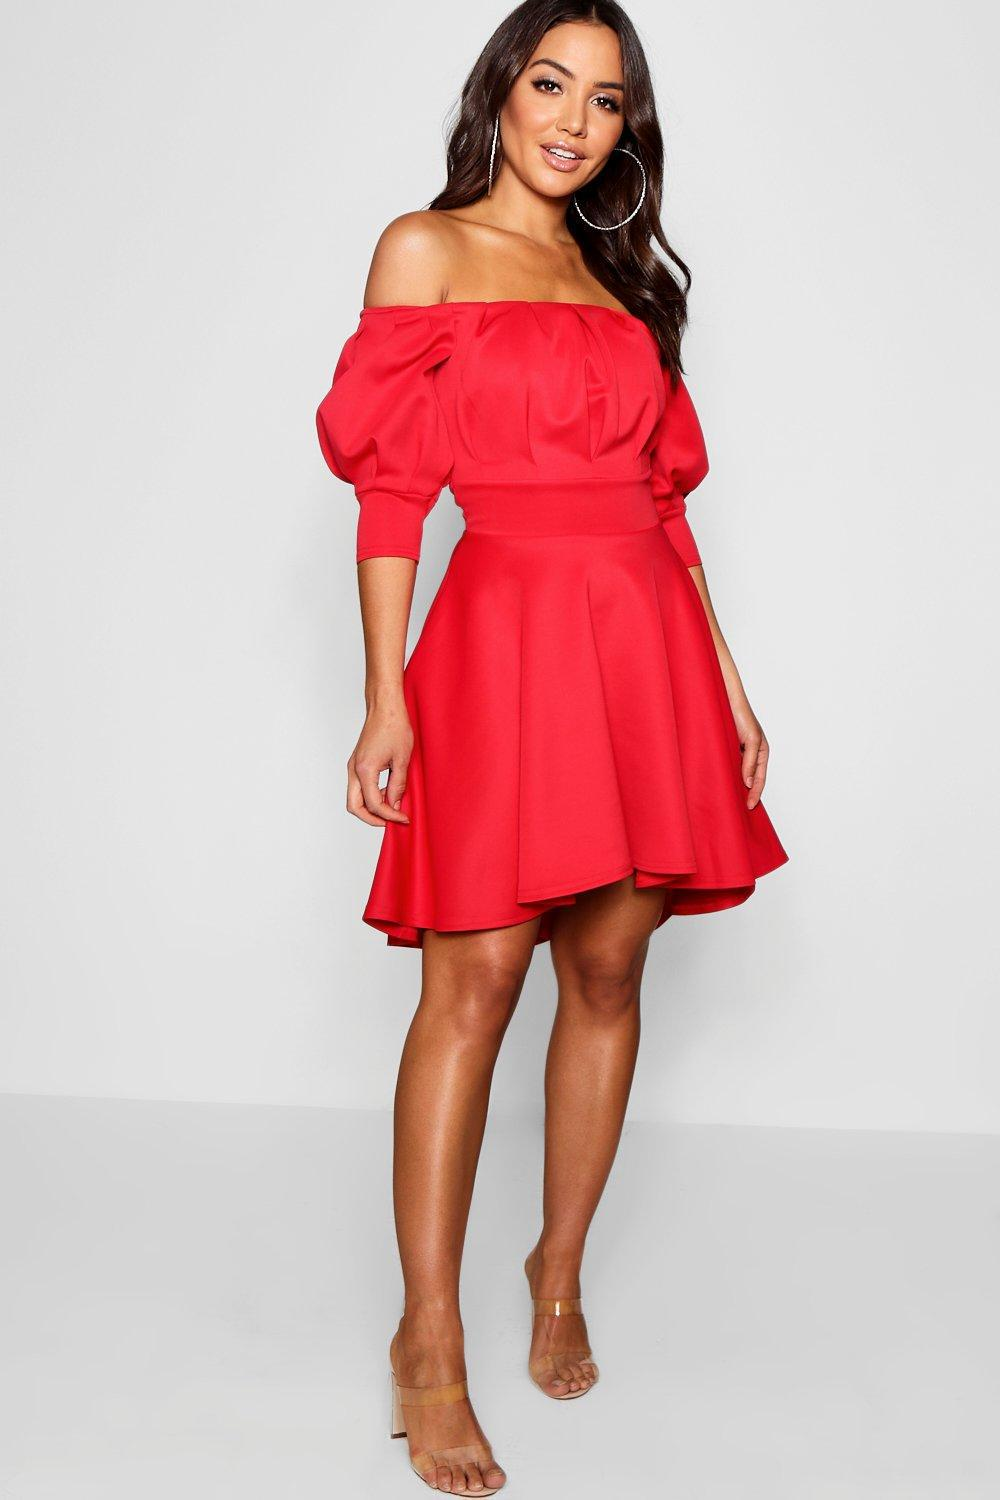 243fb6ee73 Lyst - Boohoo Off The Shoulder Puff Sleeve Skater Dress in Red